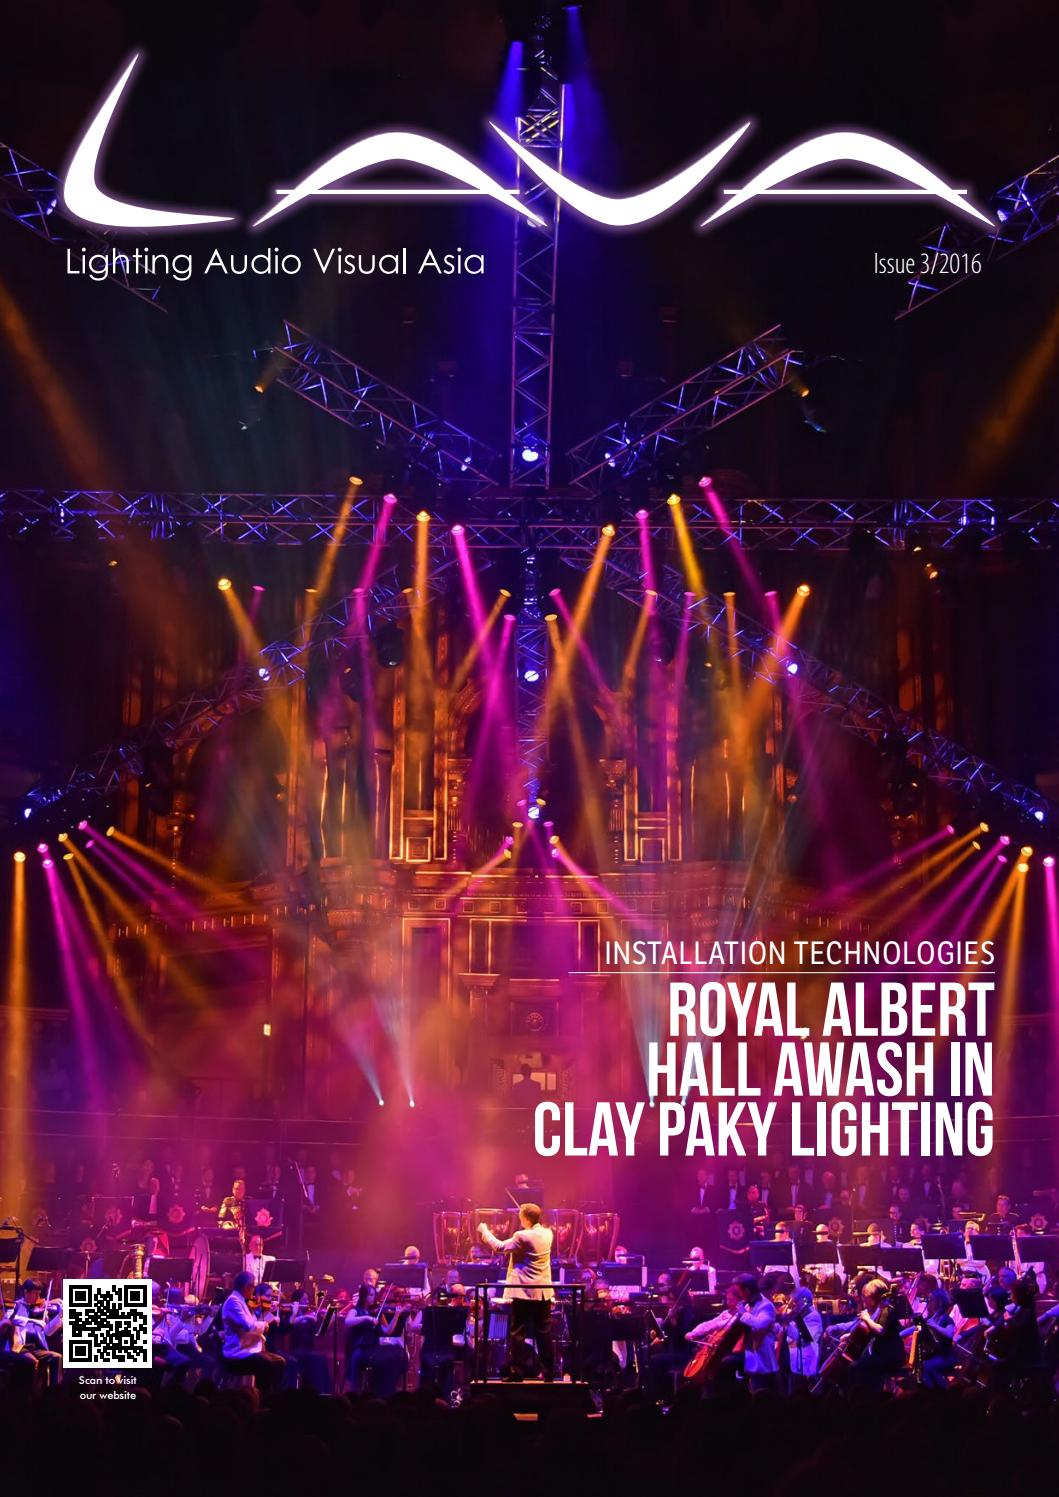 Lighting And Sound By Robwyborn Issuu Board Lamps Beautiful Asian Paper Lamp Inspired Recycled Circuit Audio Visual Asia Vol 3 2016